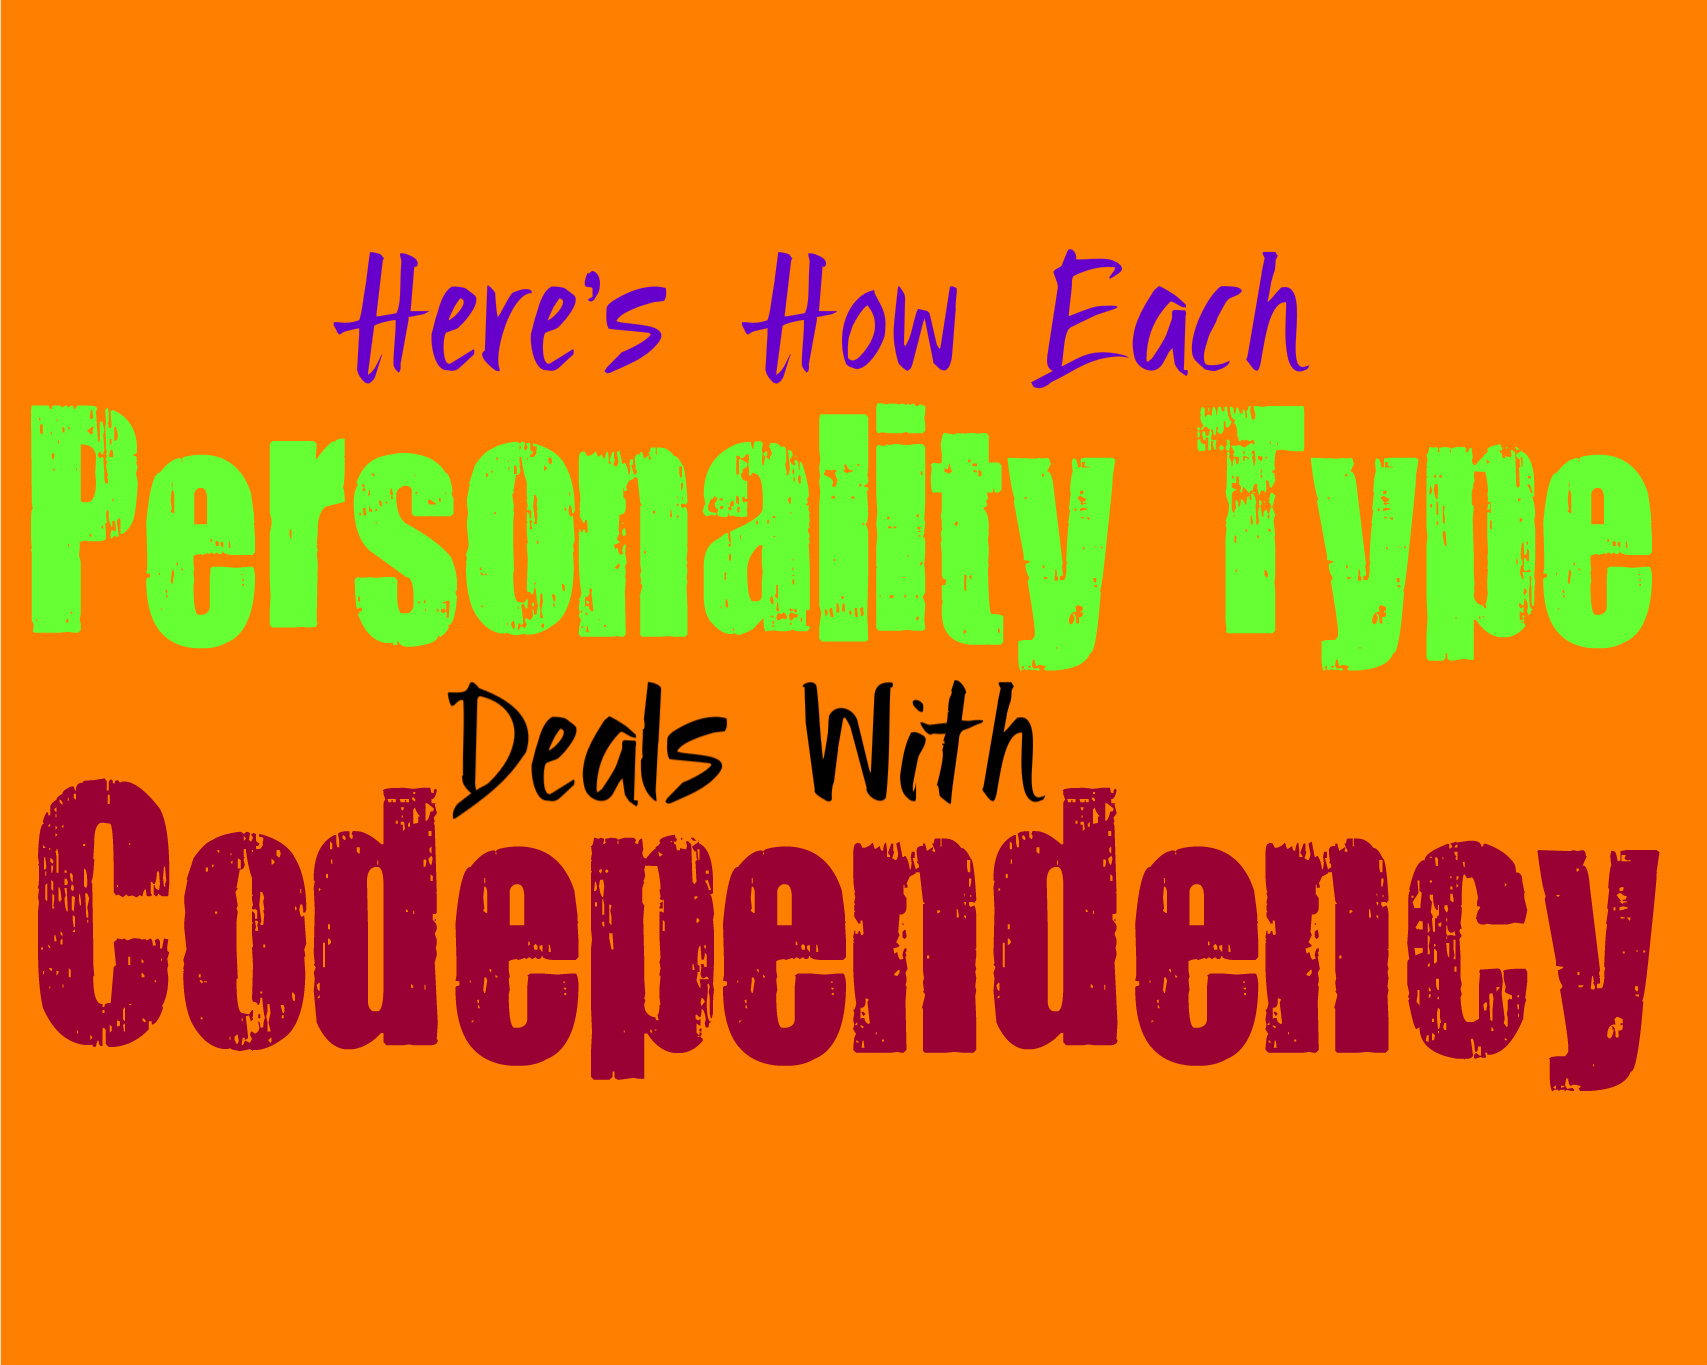 Here's How Each Personality Type Deals with Codependency